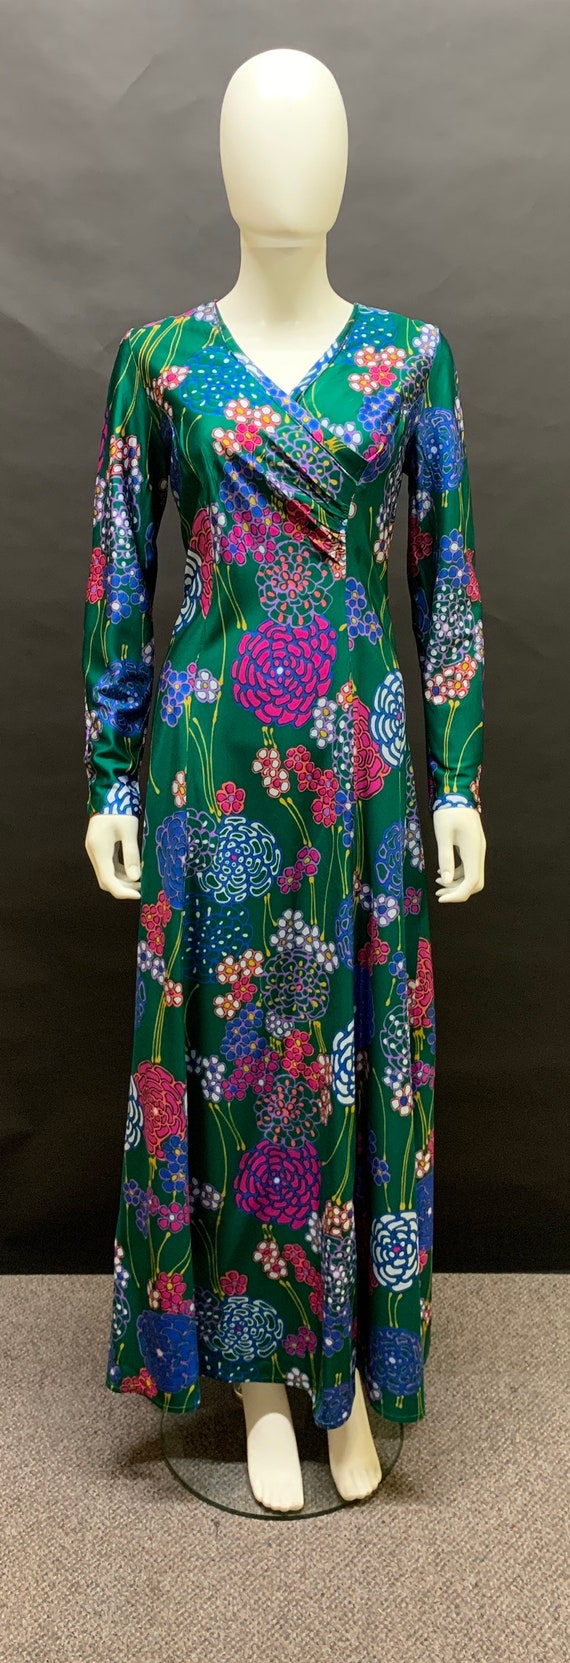 Lovely 70's volup maxi dress